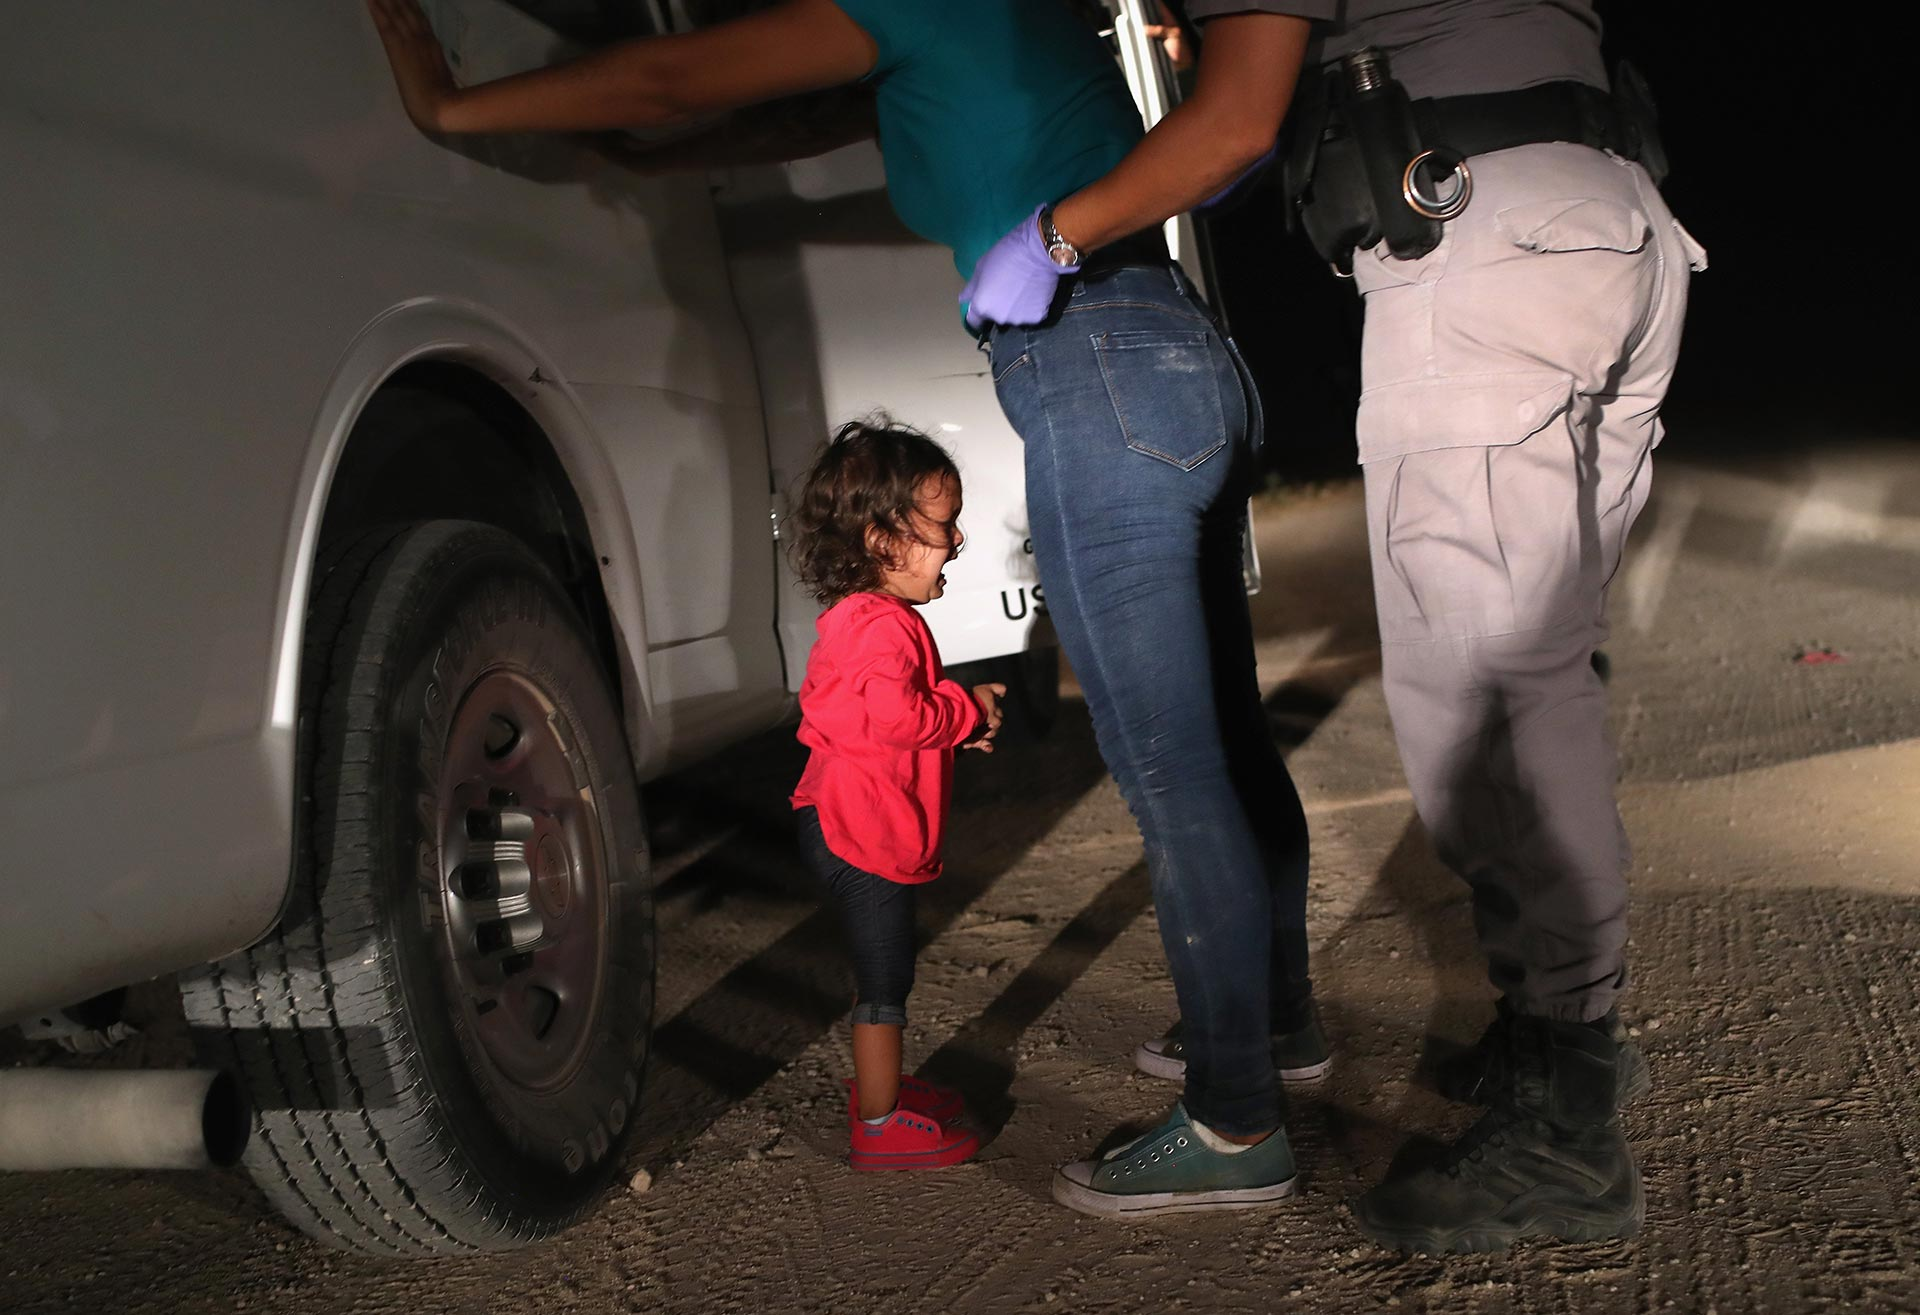 A 2-year-old girl cries as her mother is searched and detained near the U.S.-Mexico border